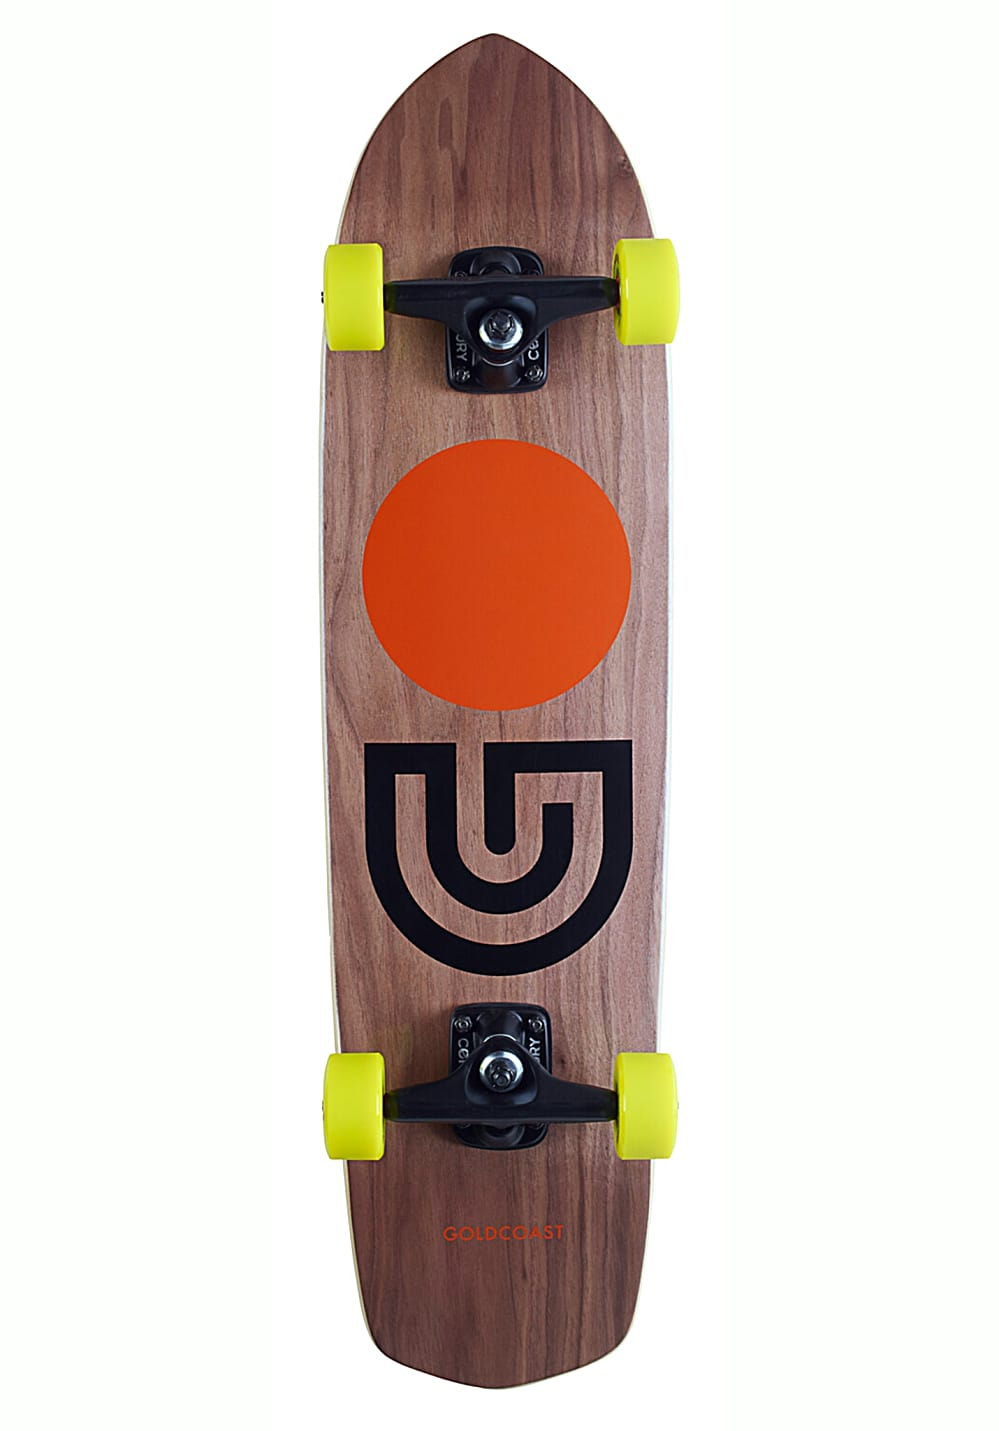 goldcoast slapstick 31 longboard schwarz planet sports. Black Bedroom Furniture Sets. Home Design Ideas